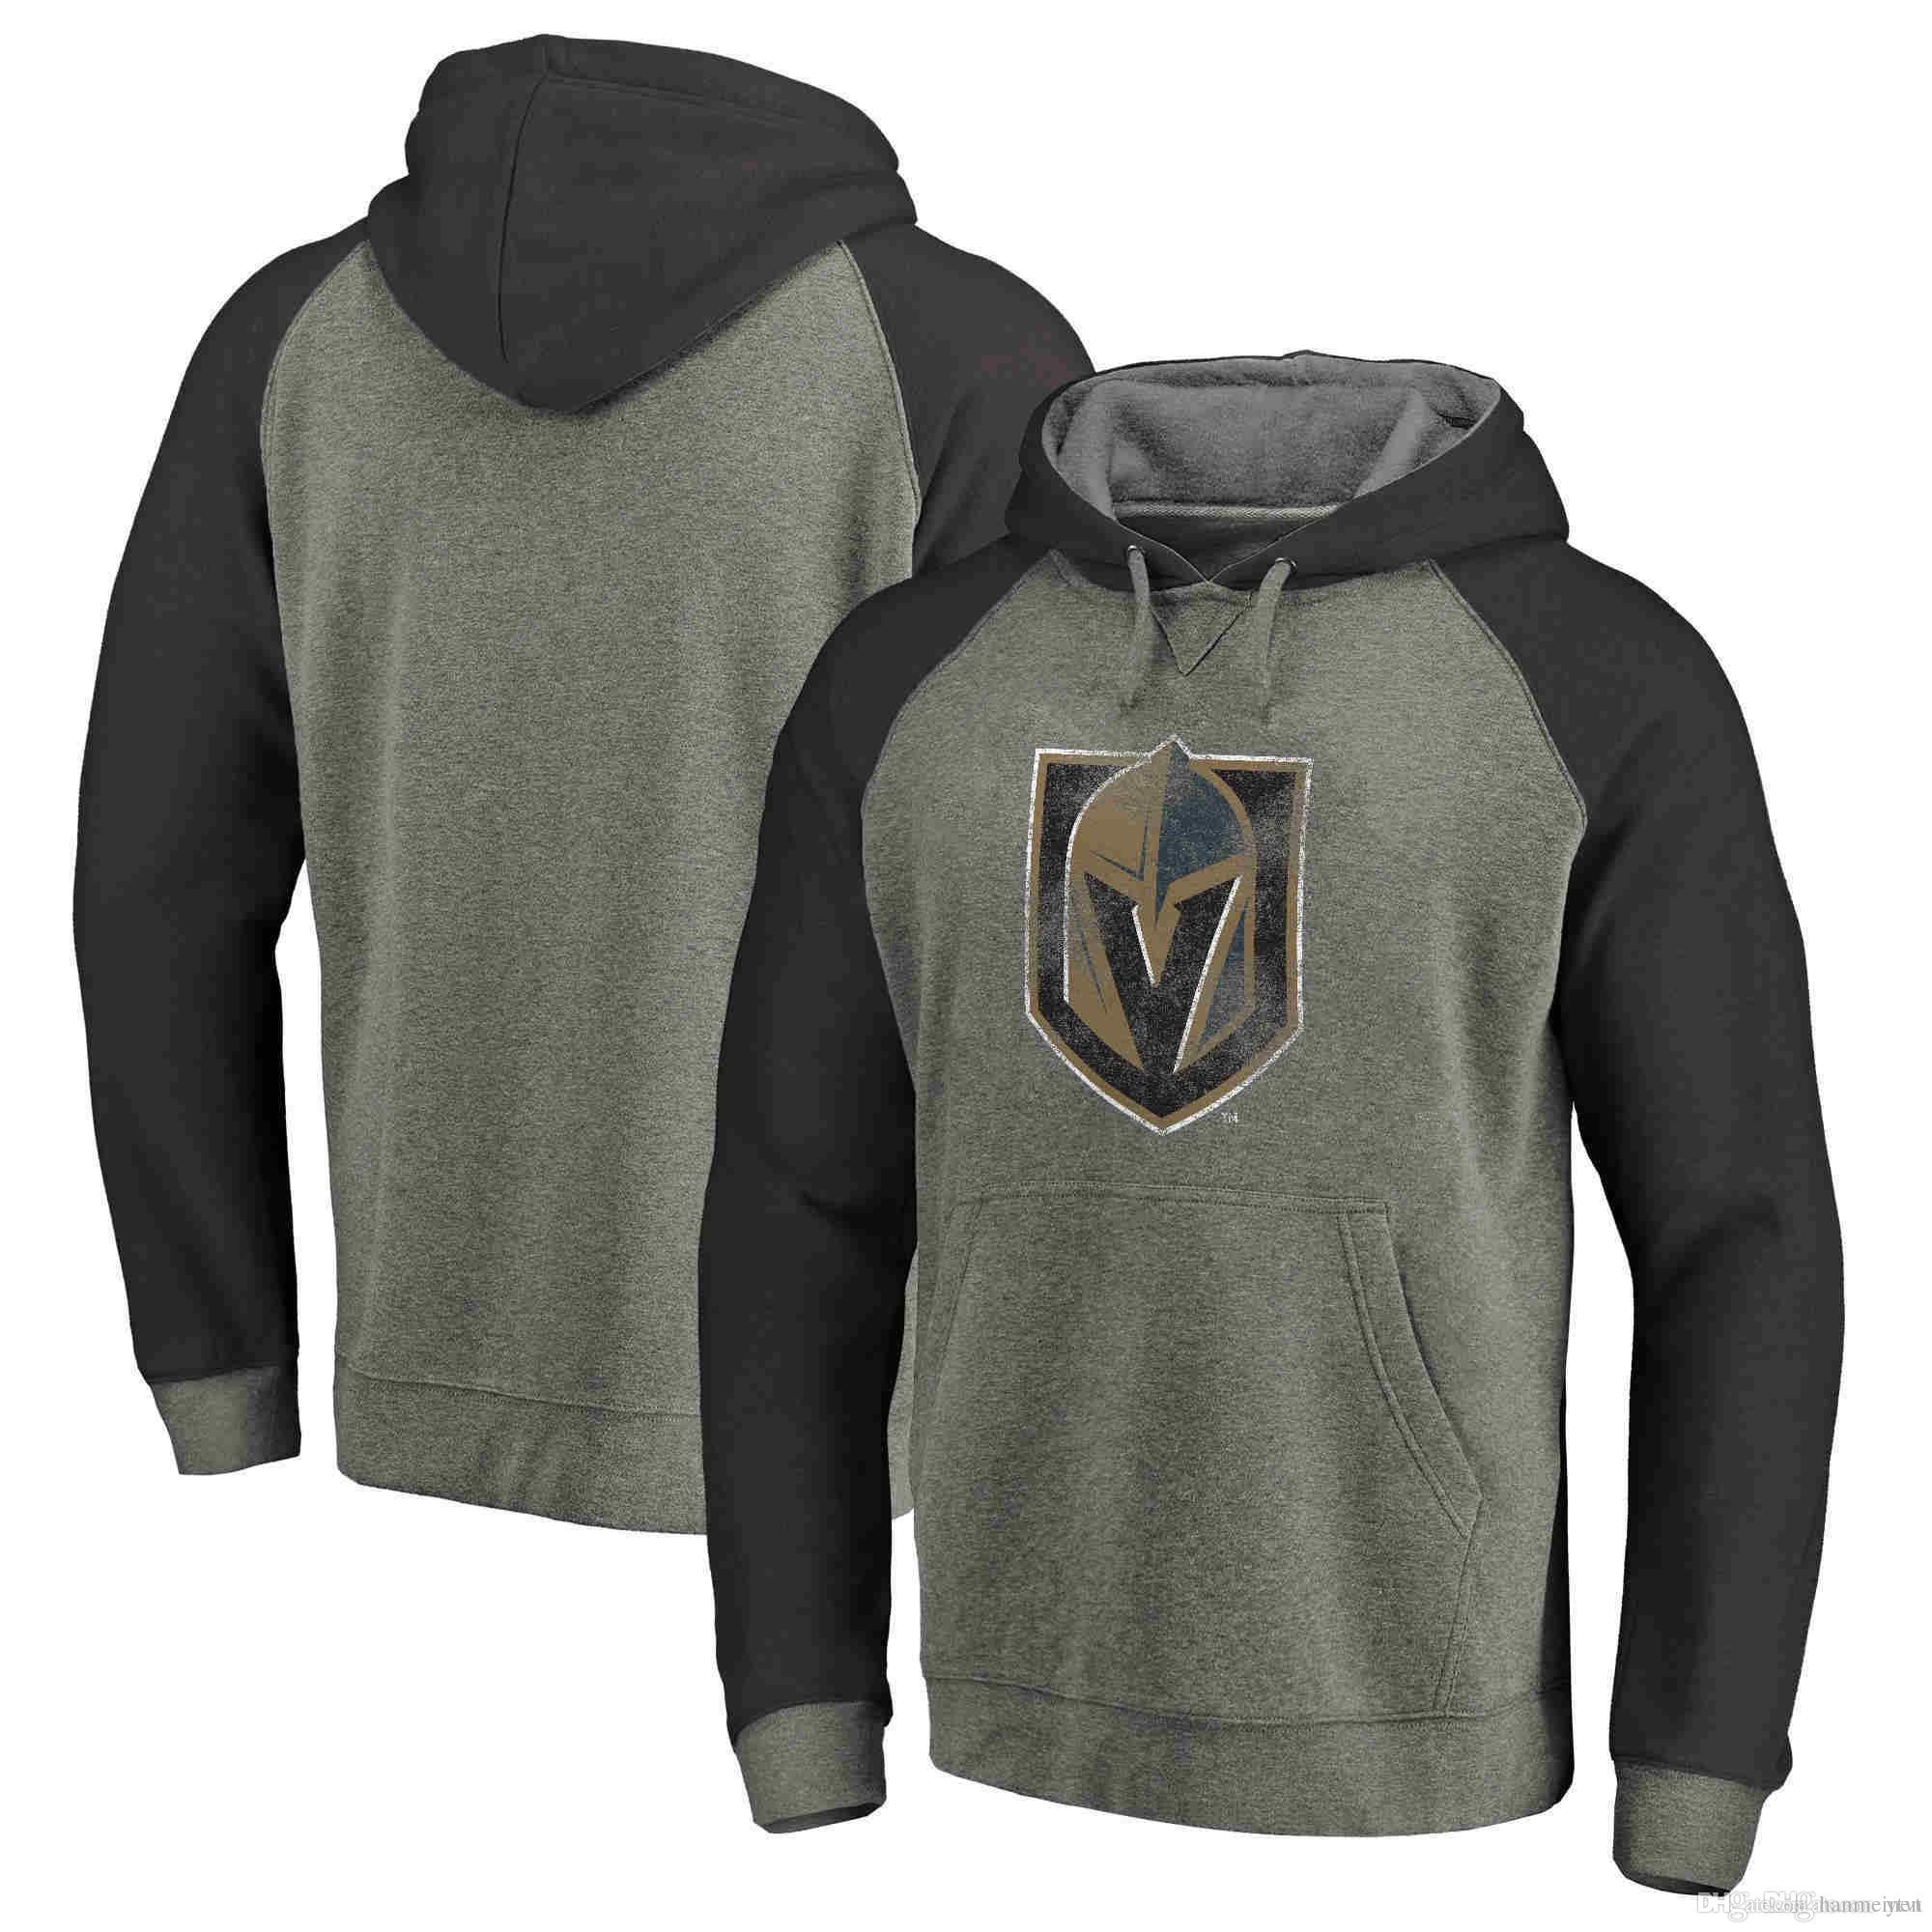 ed8703c1524 2019 New Men S 2018 Vegas Golden Knights Heathered Gray Team Distressed Ice  Hockey Pullover Hoodies Sweatshirts Size  S 4XL From Hanmeinen